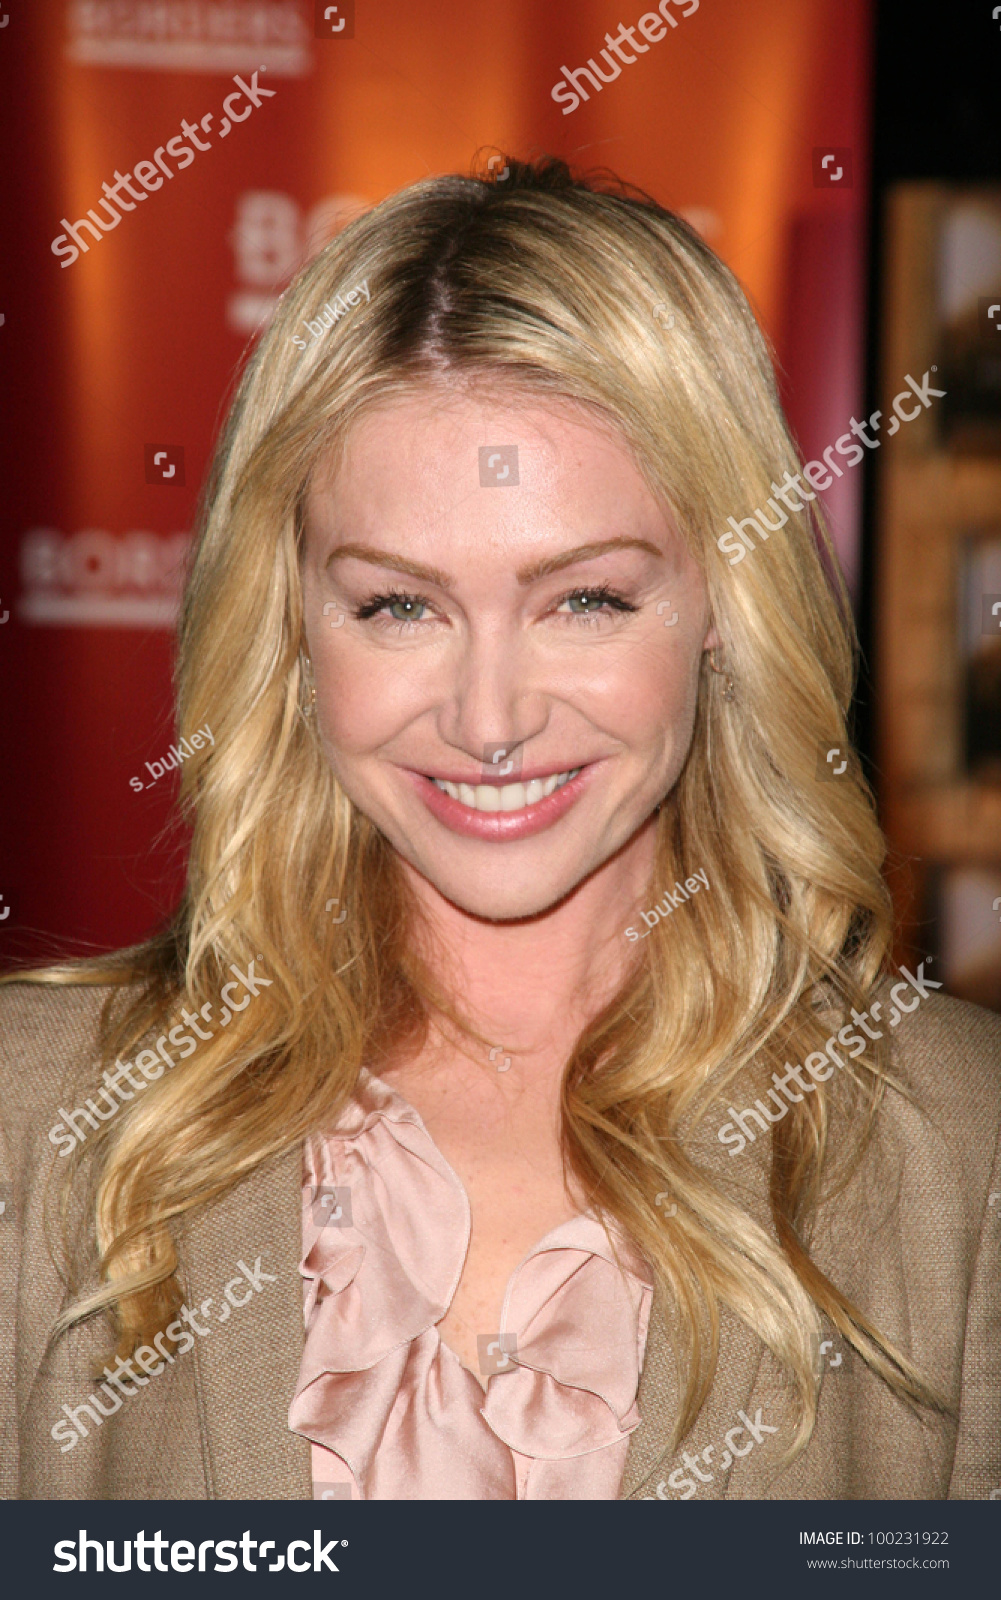 Portia De Rossi At An In Store To Sign Her New Book